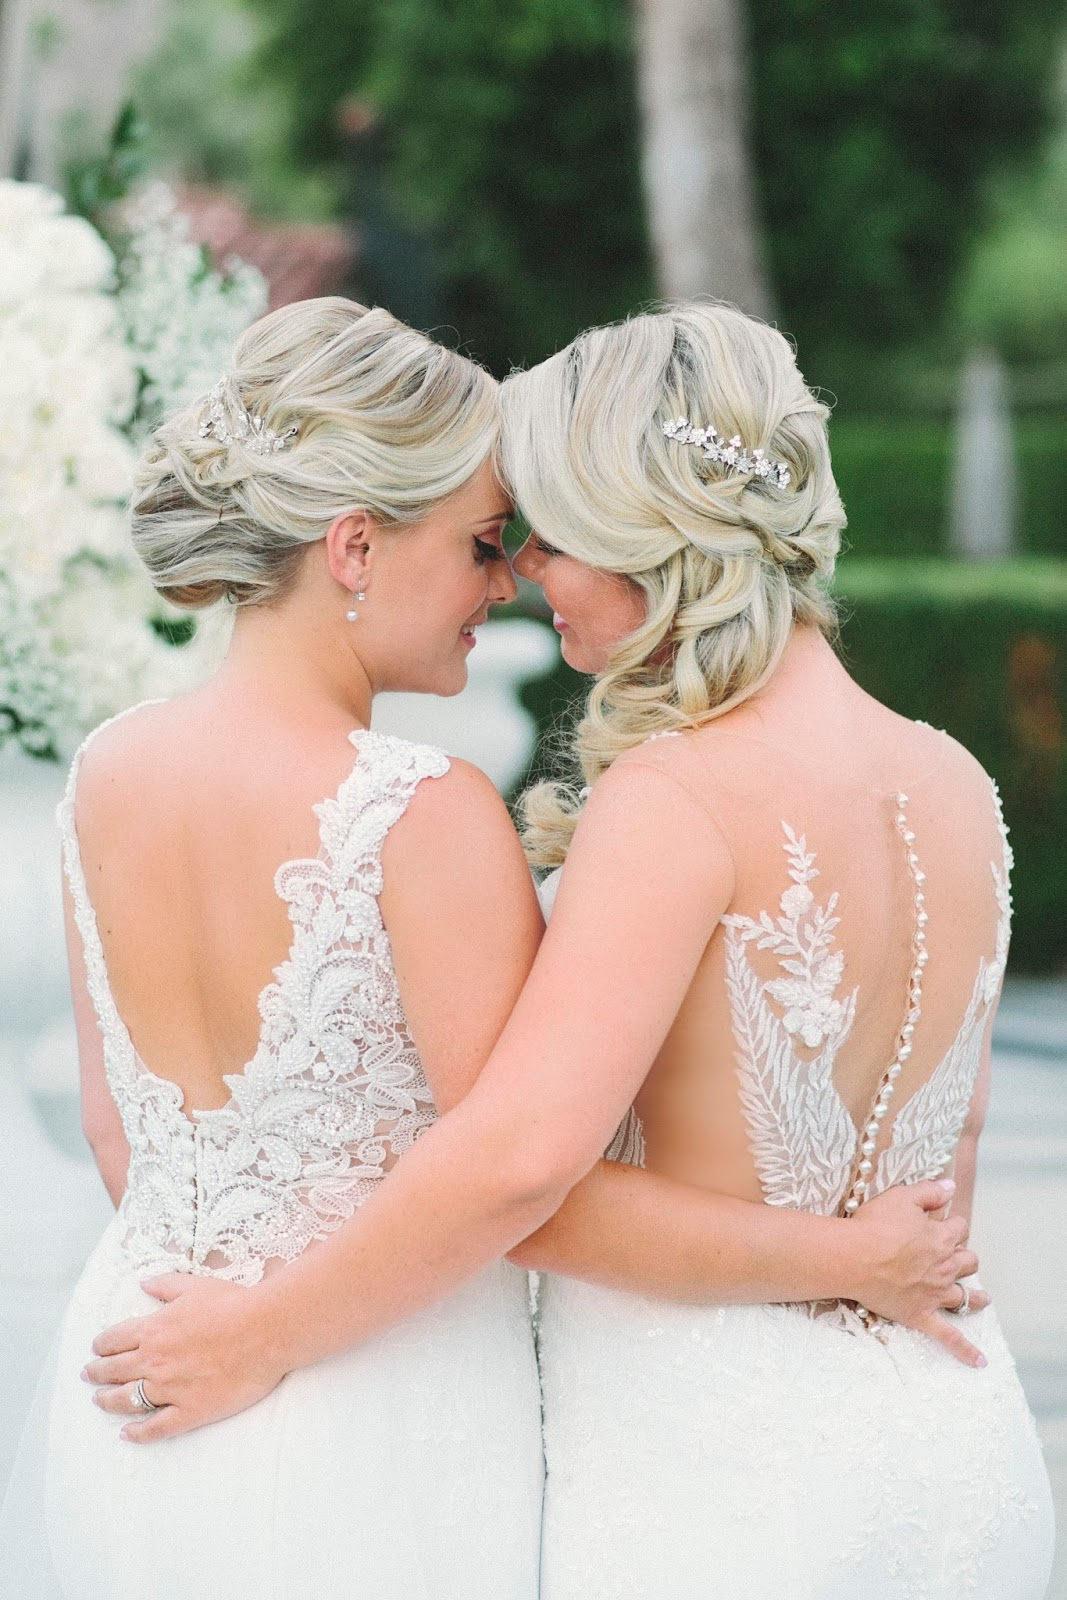 Pin on wedding suits for women